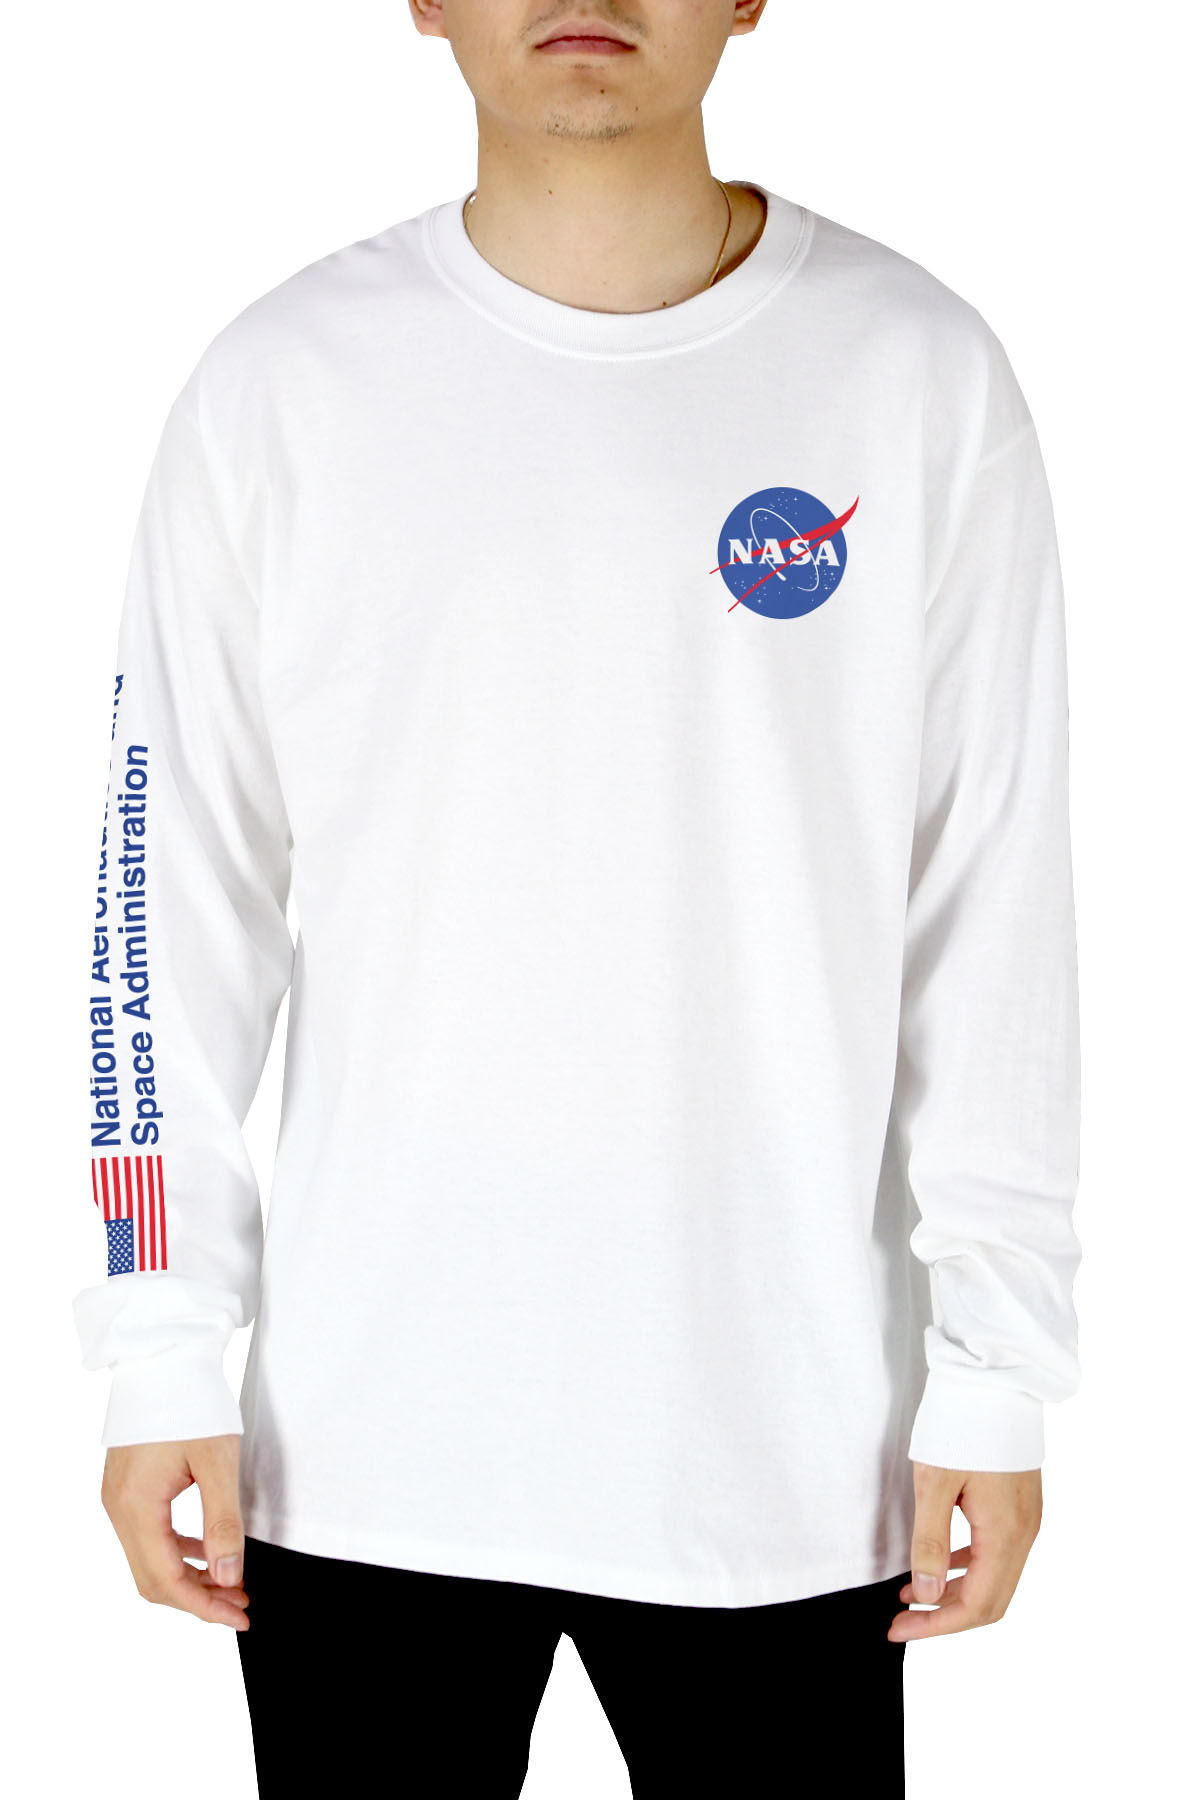 9c342ab1 NASA MEATBALL LOGO MENS LONG SLEEVE T-SHIRT